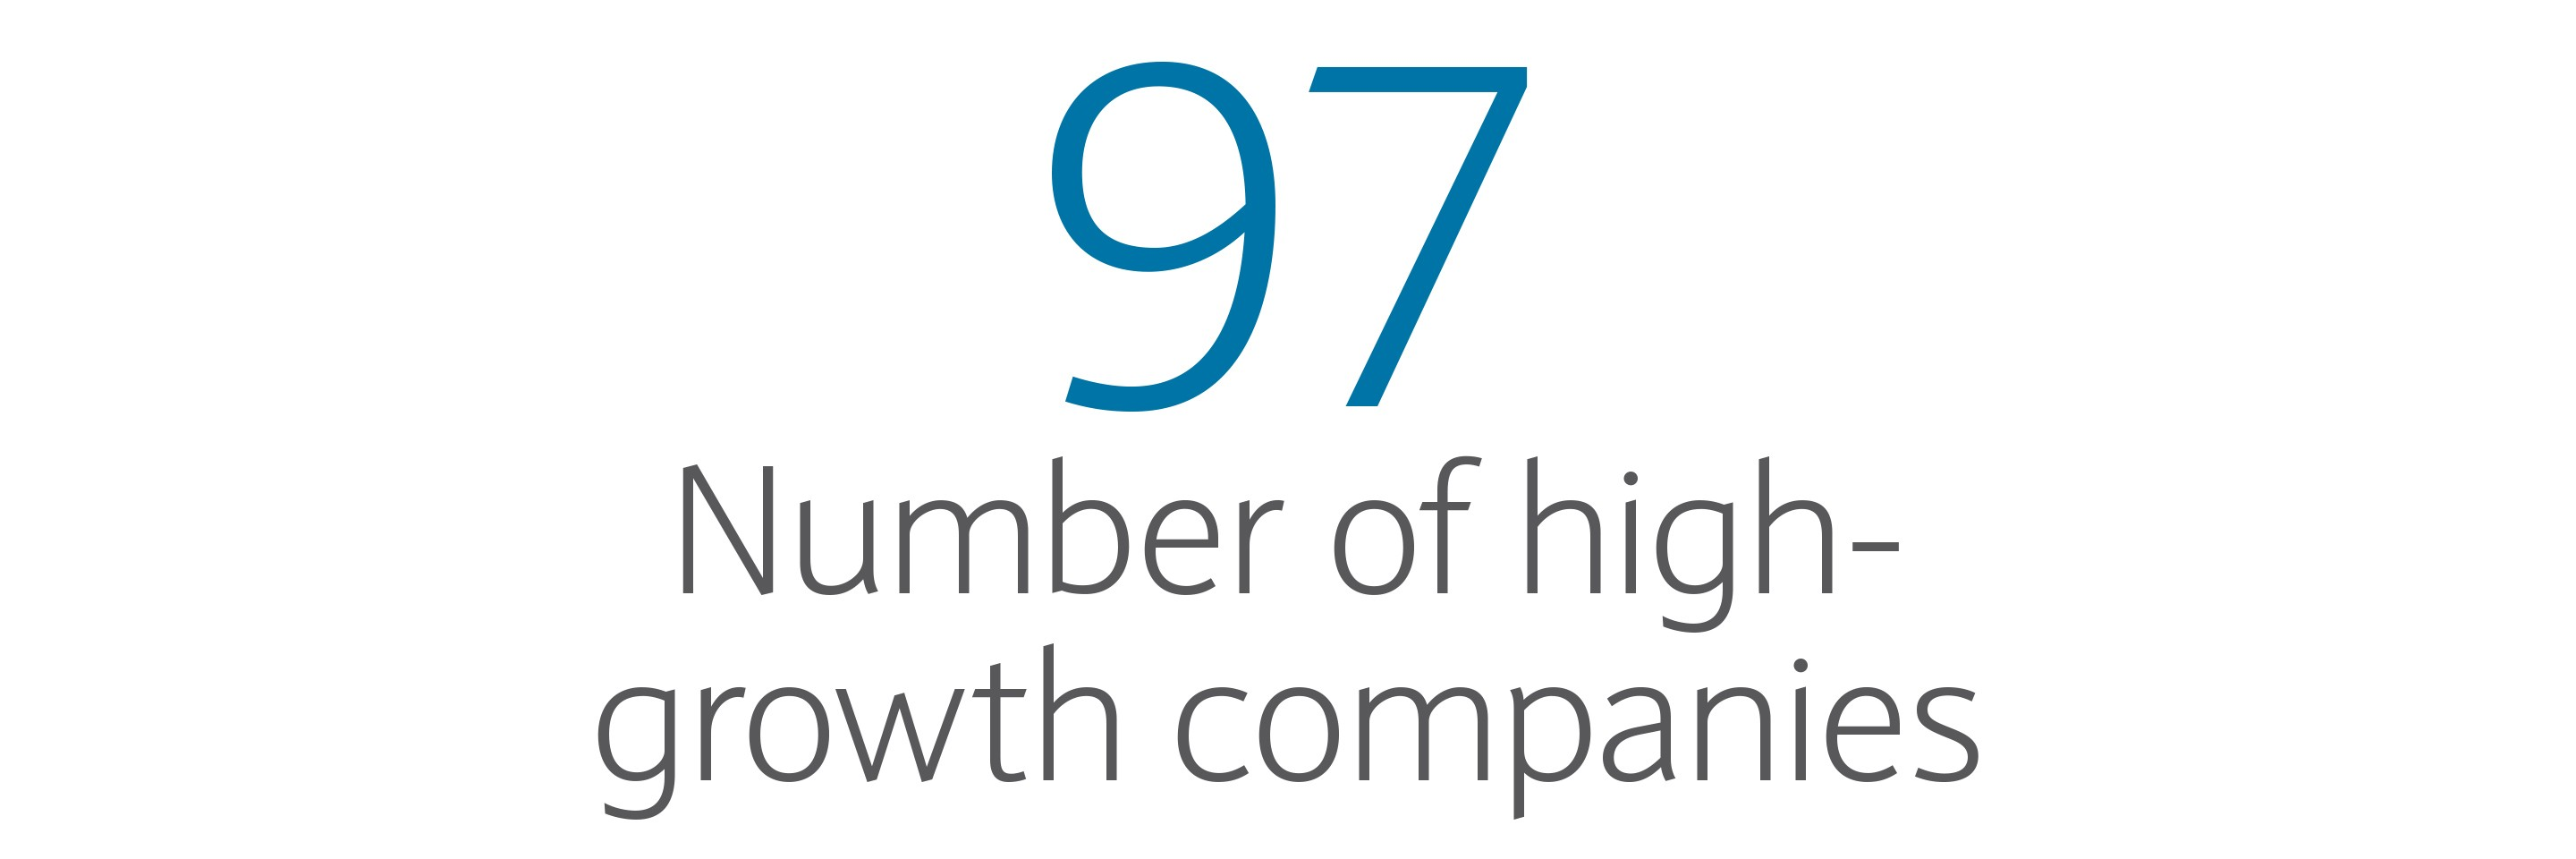 97: Number of high-growth companies